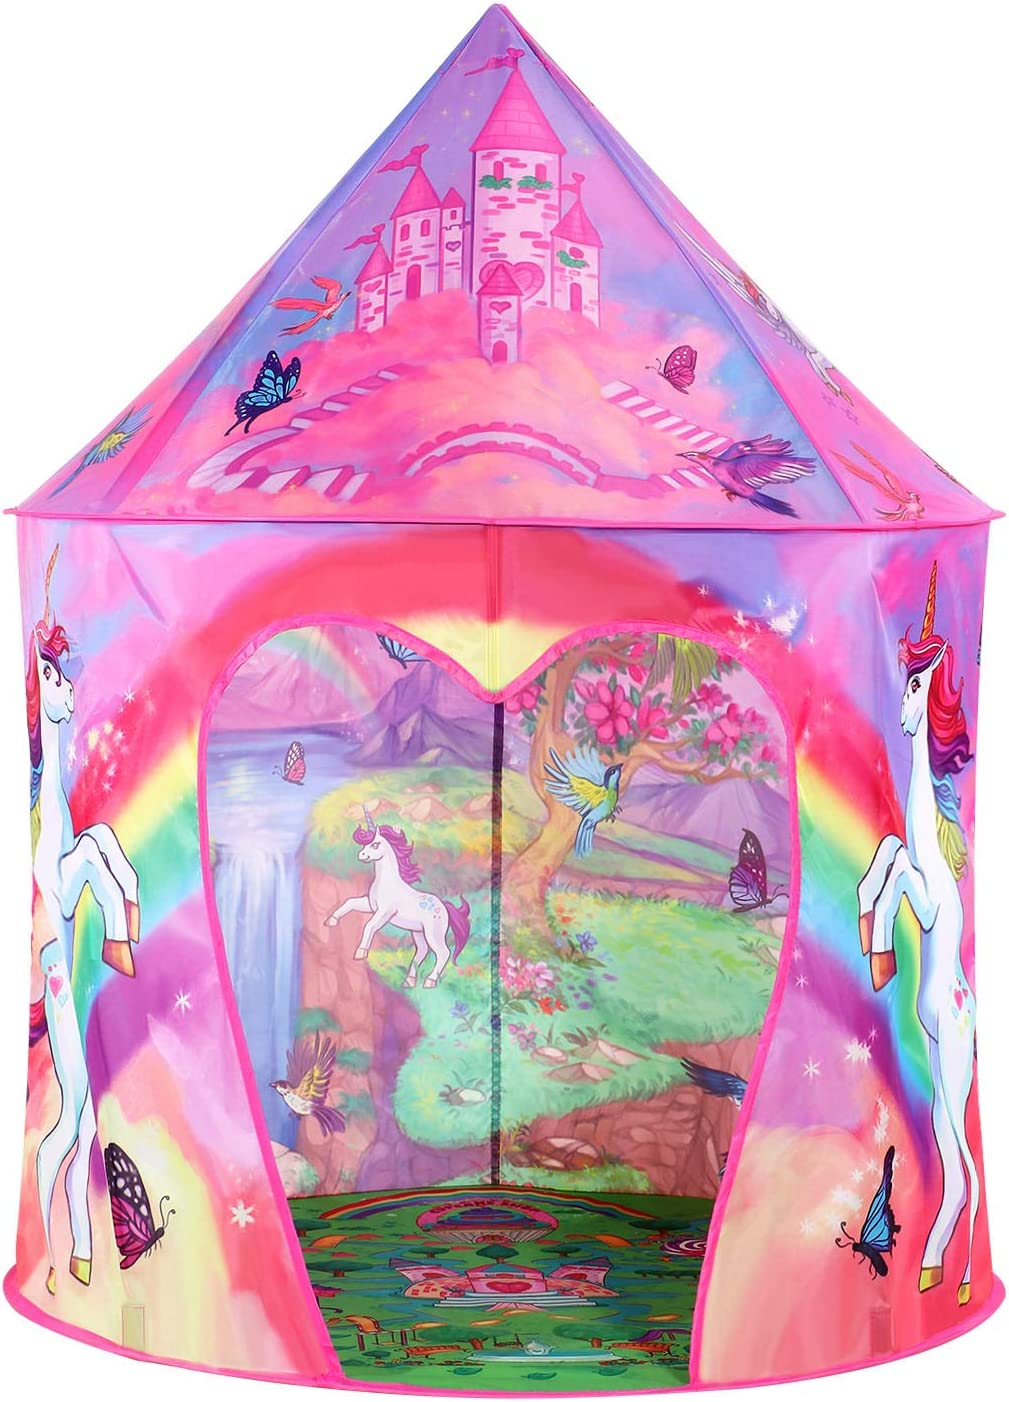 Tacobear Play Tent for Kids Girls Unicorn Princess Castle Playhouse for Indoor and Outdoor Portable Pop Up Toy Tent with Carry Bag for Girls Boys foldable Children Play Tent in Unicorn Design